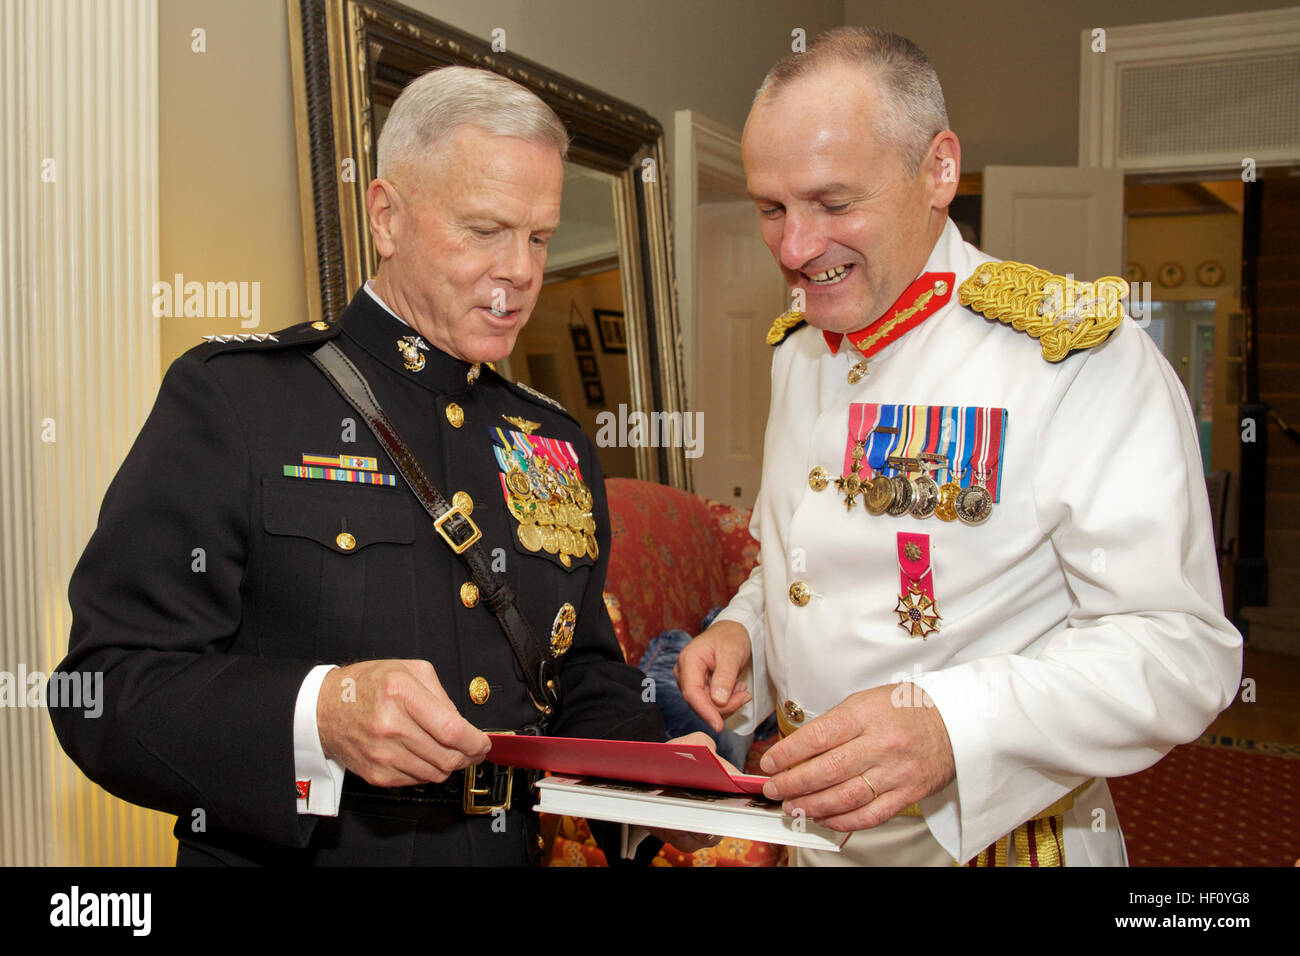 Commandant of the U.S. Marine Corps Gen. James F. Amos, left, speaks with Commandant General of the British Royal Stock Photo